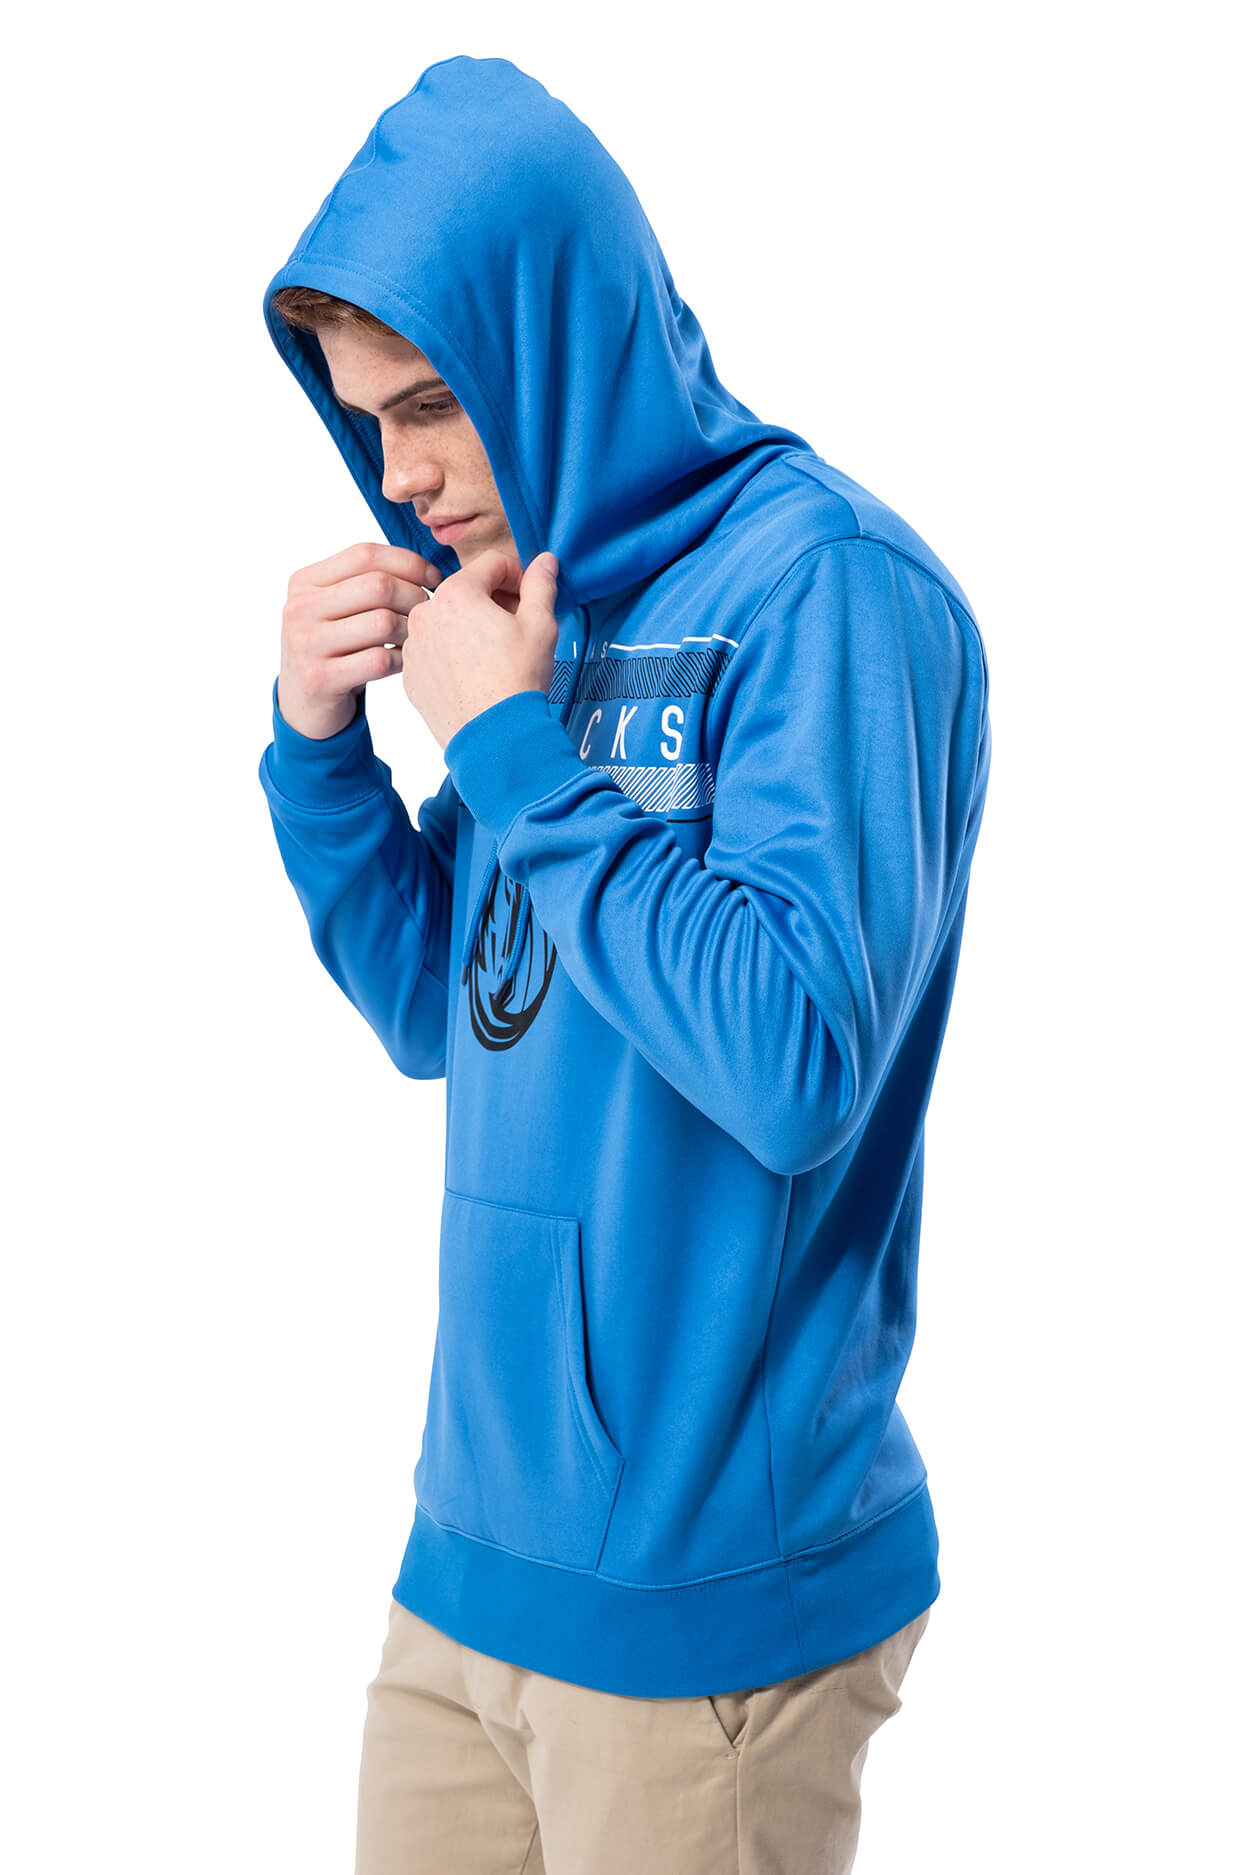 NBA Dallas Mavericks Men's Fleece Hoodie Midtown|Dallas Mavericks